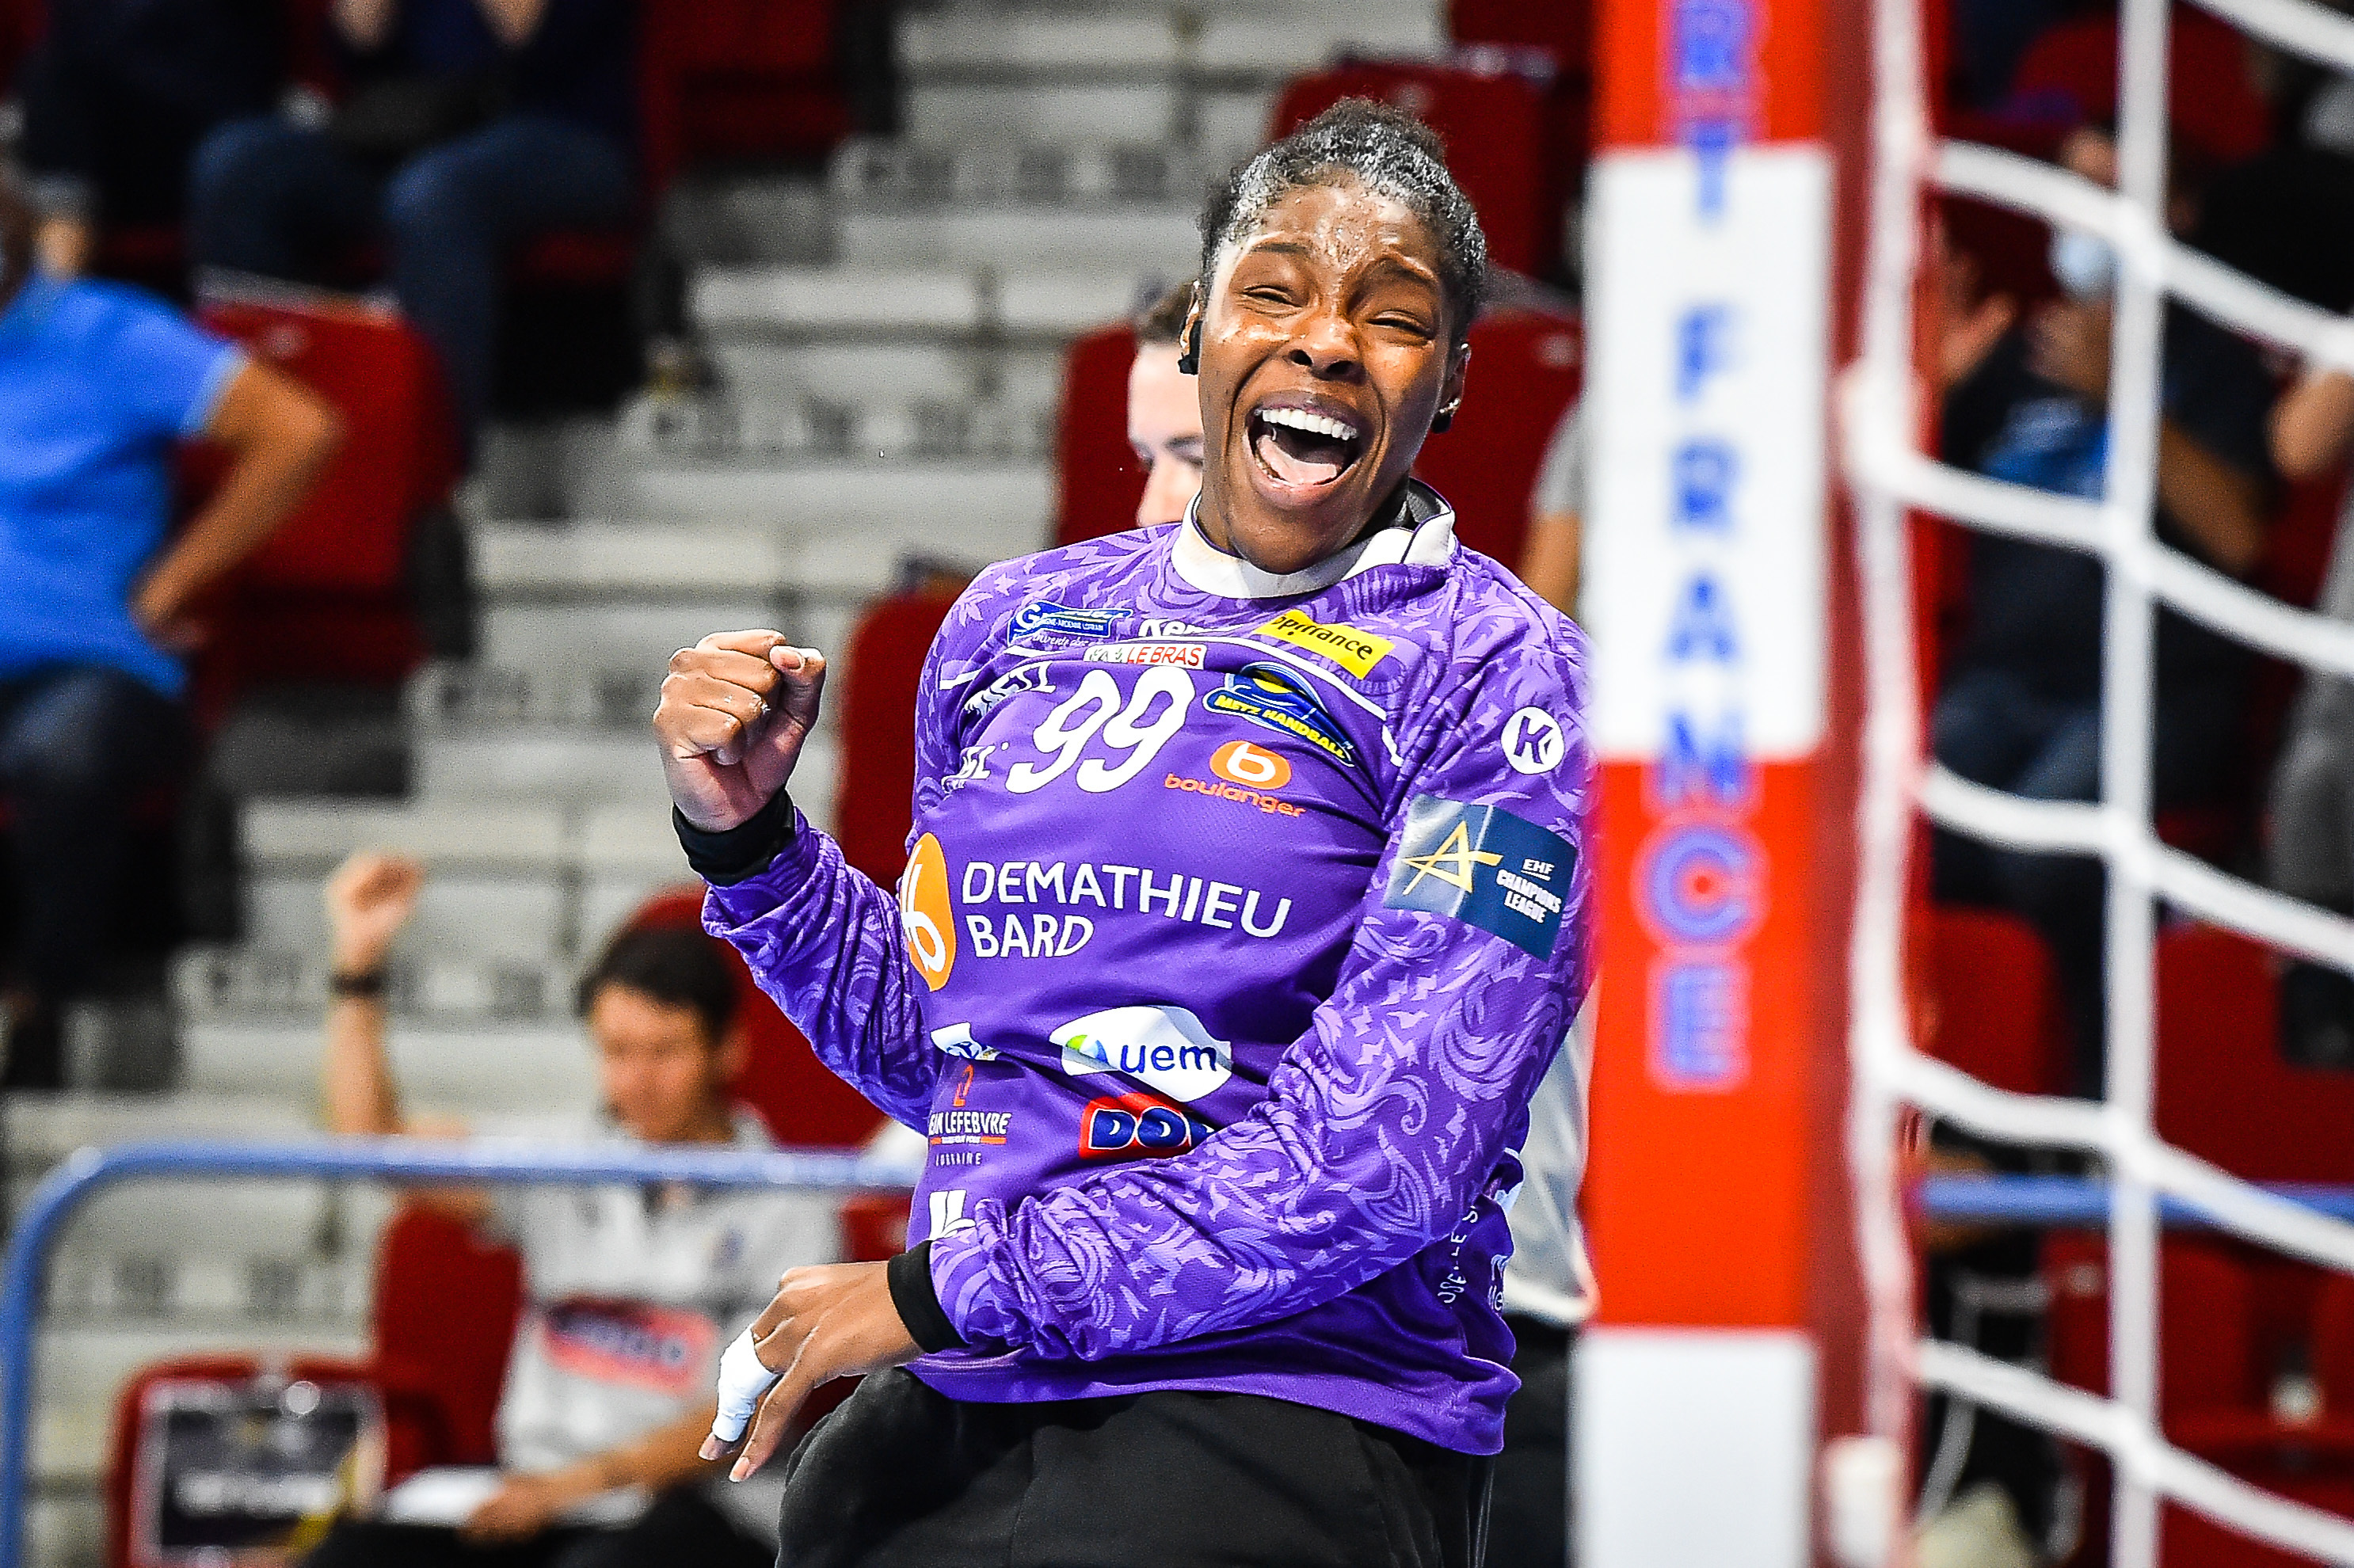 Hatadou SAKO of Metz during the DELO EHF Champions League match between Metz and Kristiansand on September 26, 2021 in Metz, France. (Photo by Matthieu Mirville/Icon Sport) -  (France)